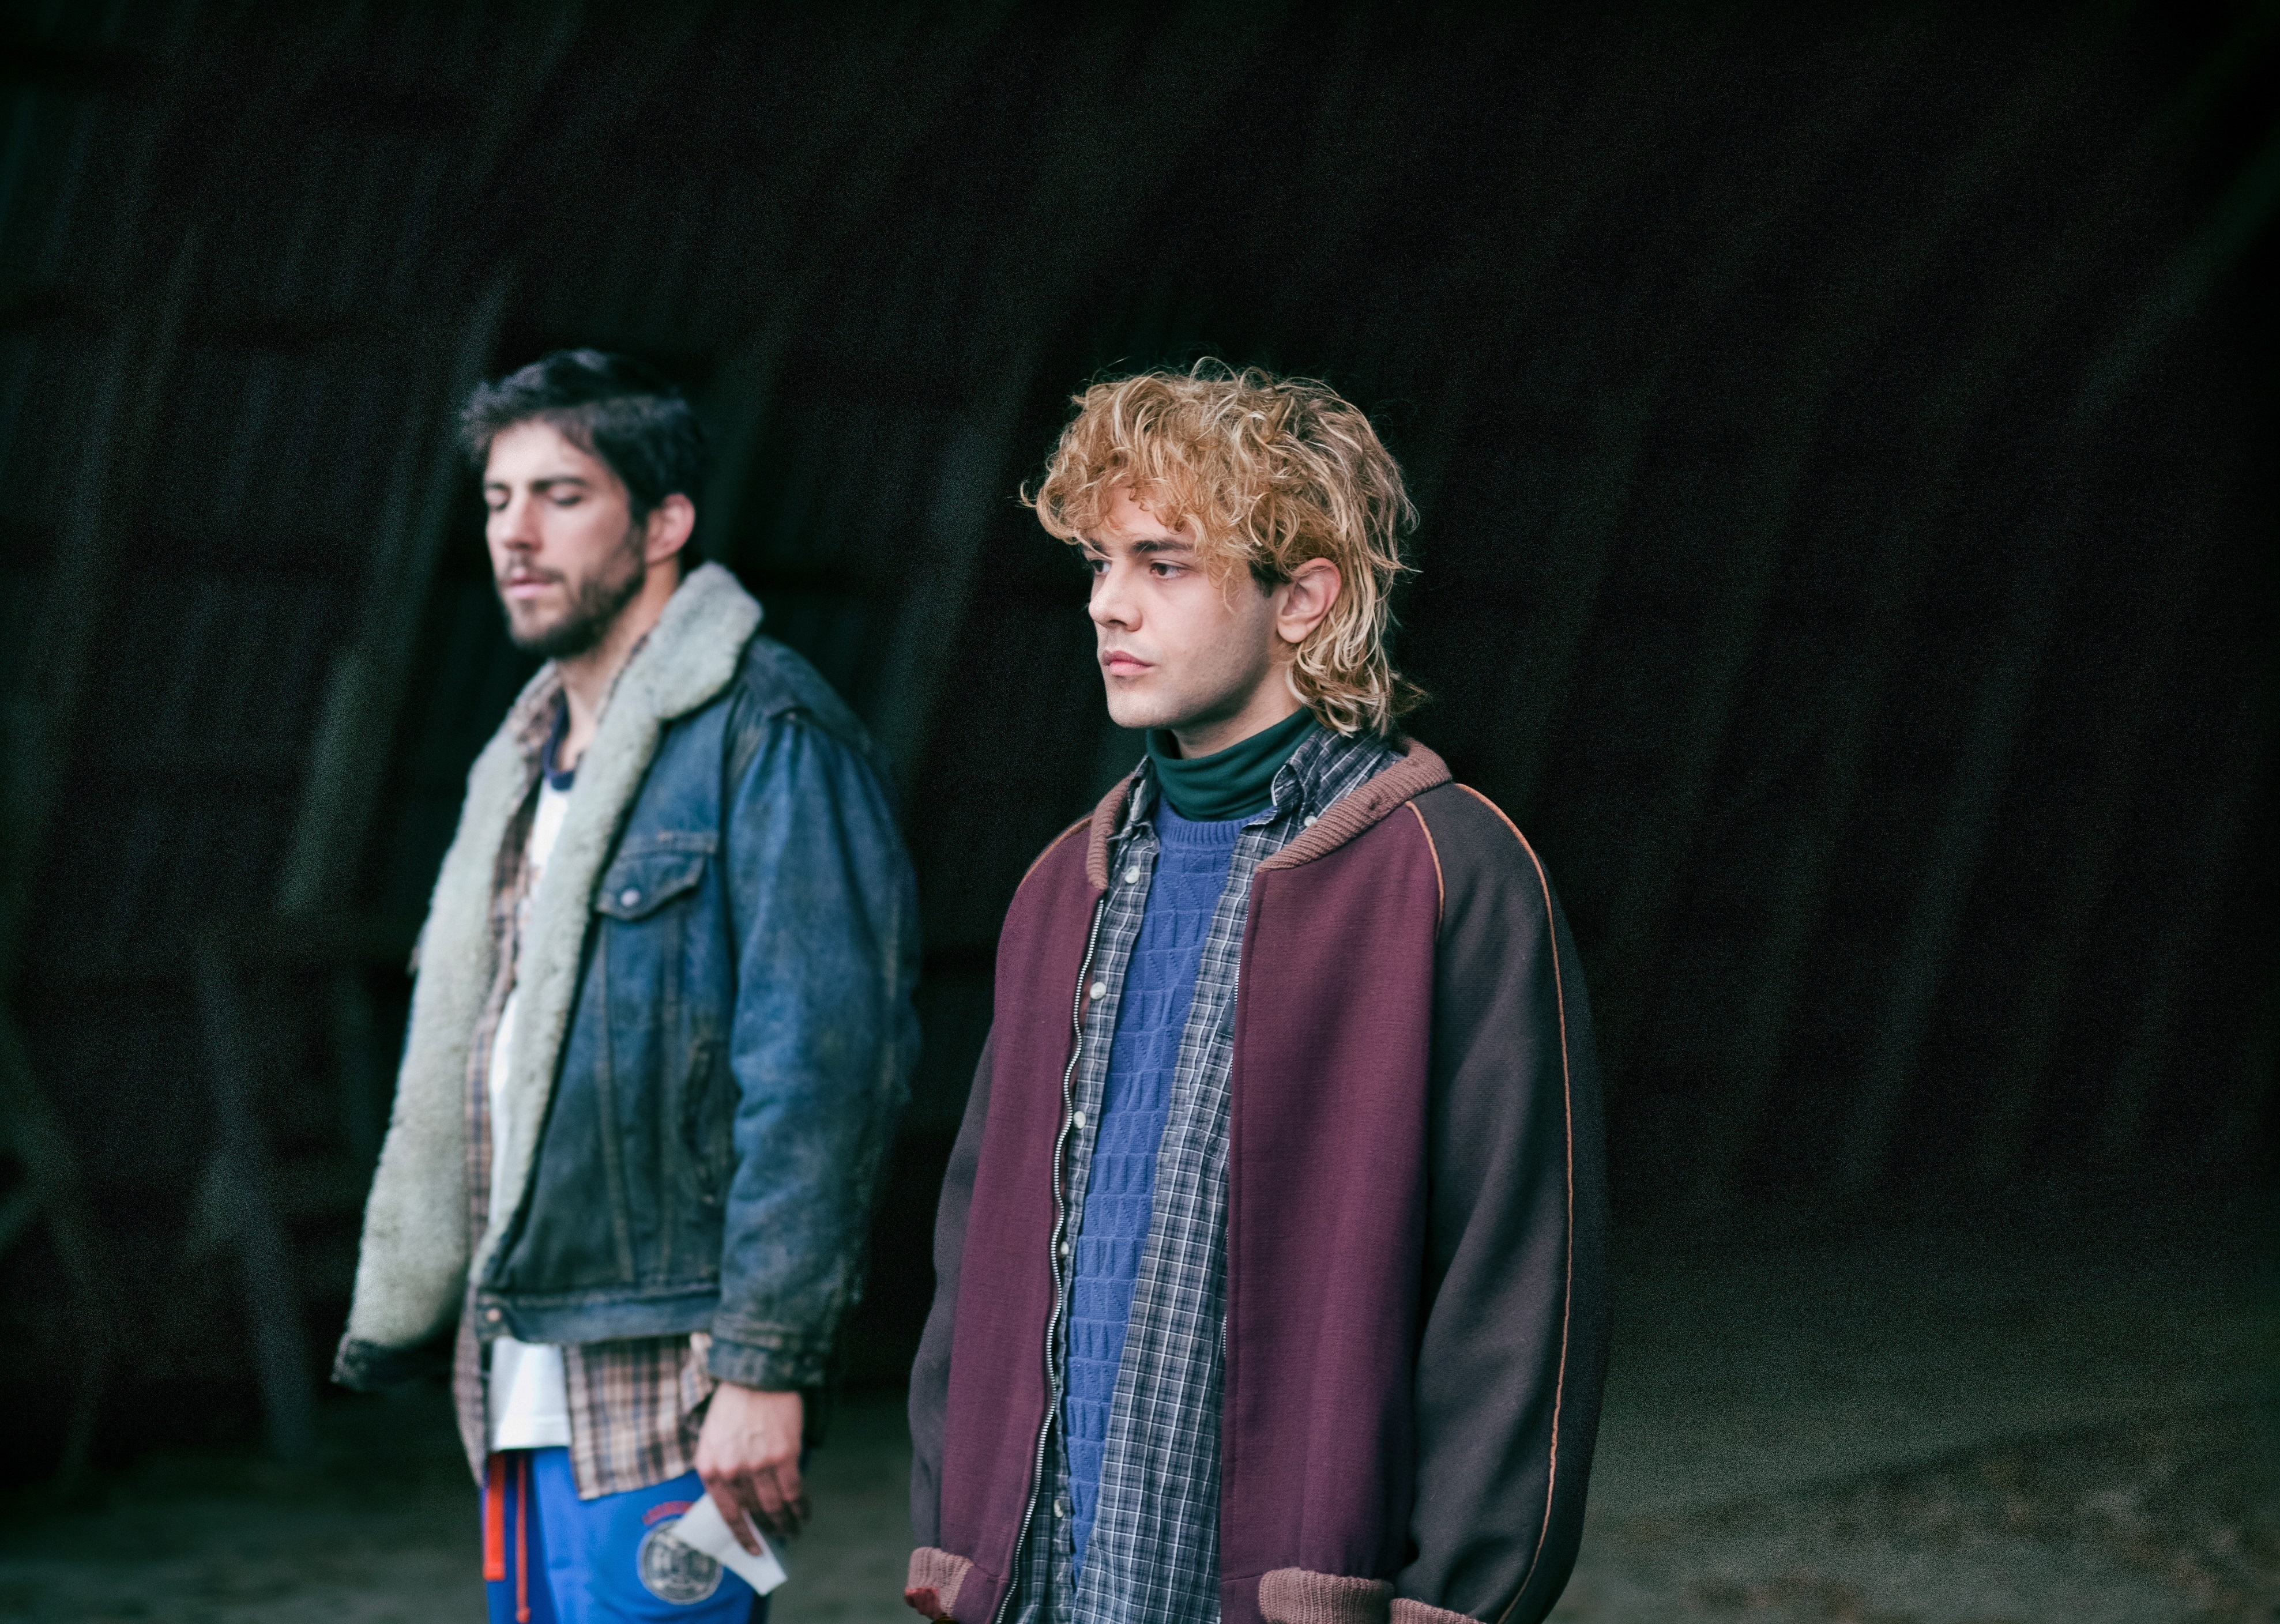 CINEMA GAY : Tom à la ferme de Xavier Dolan 02